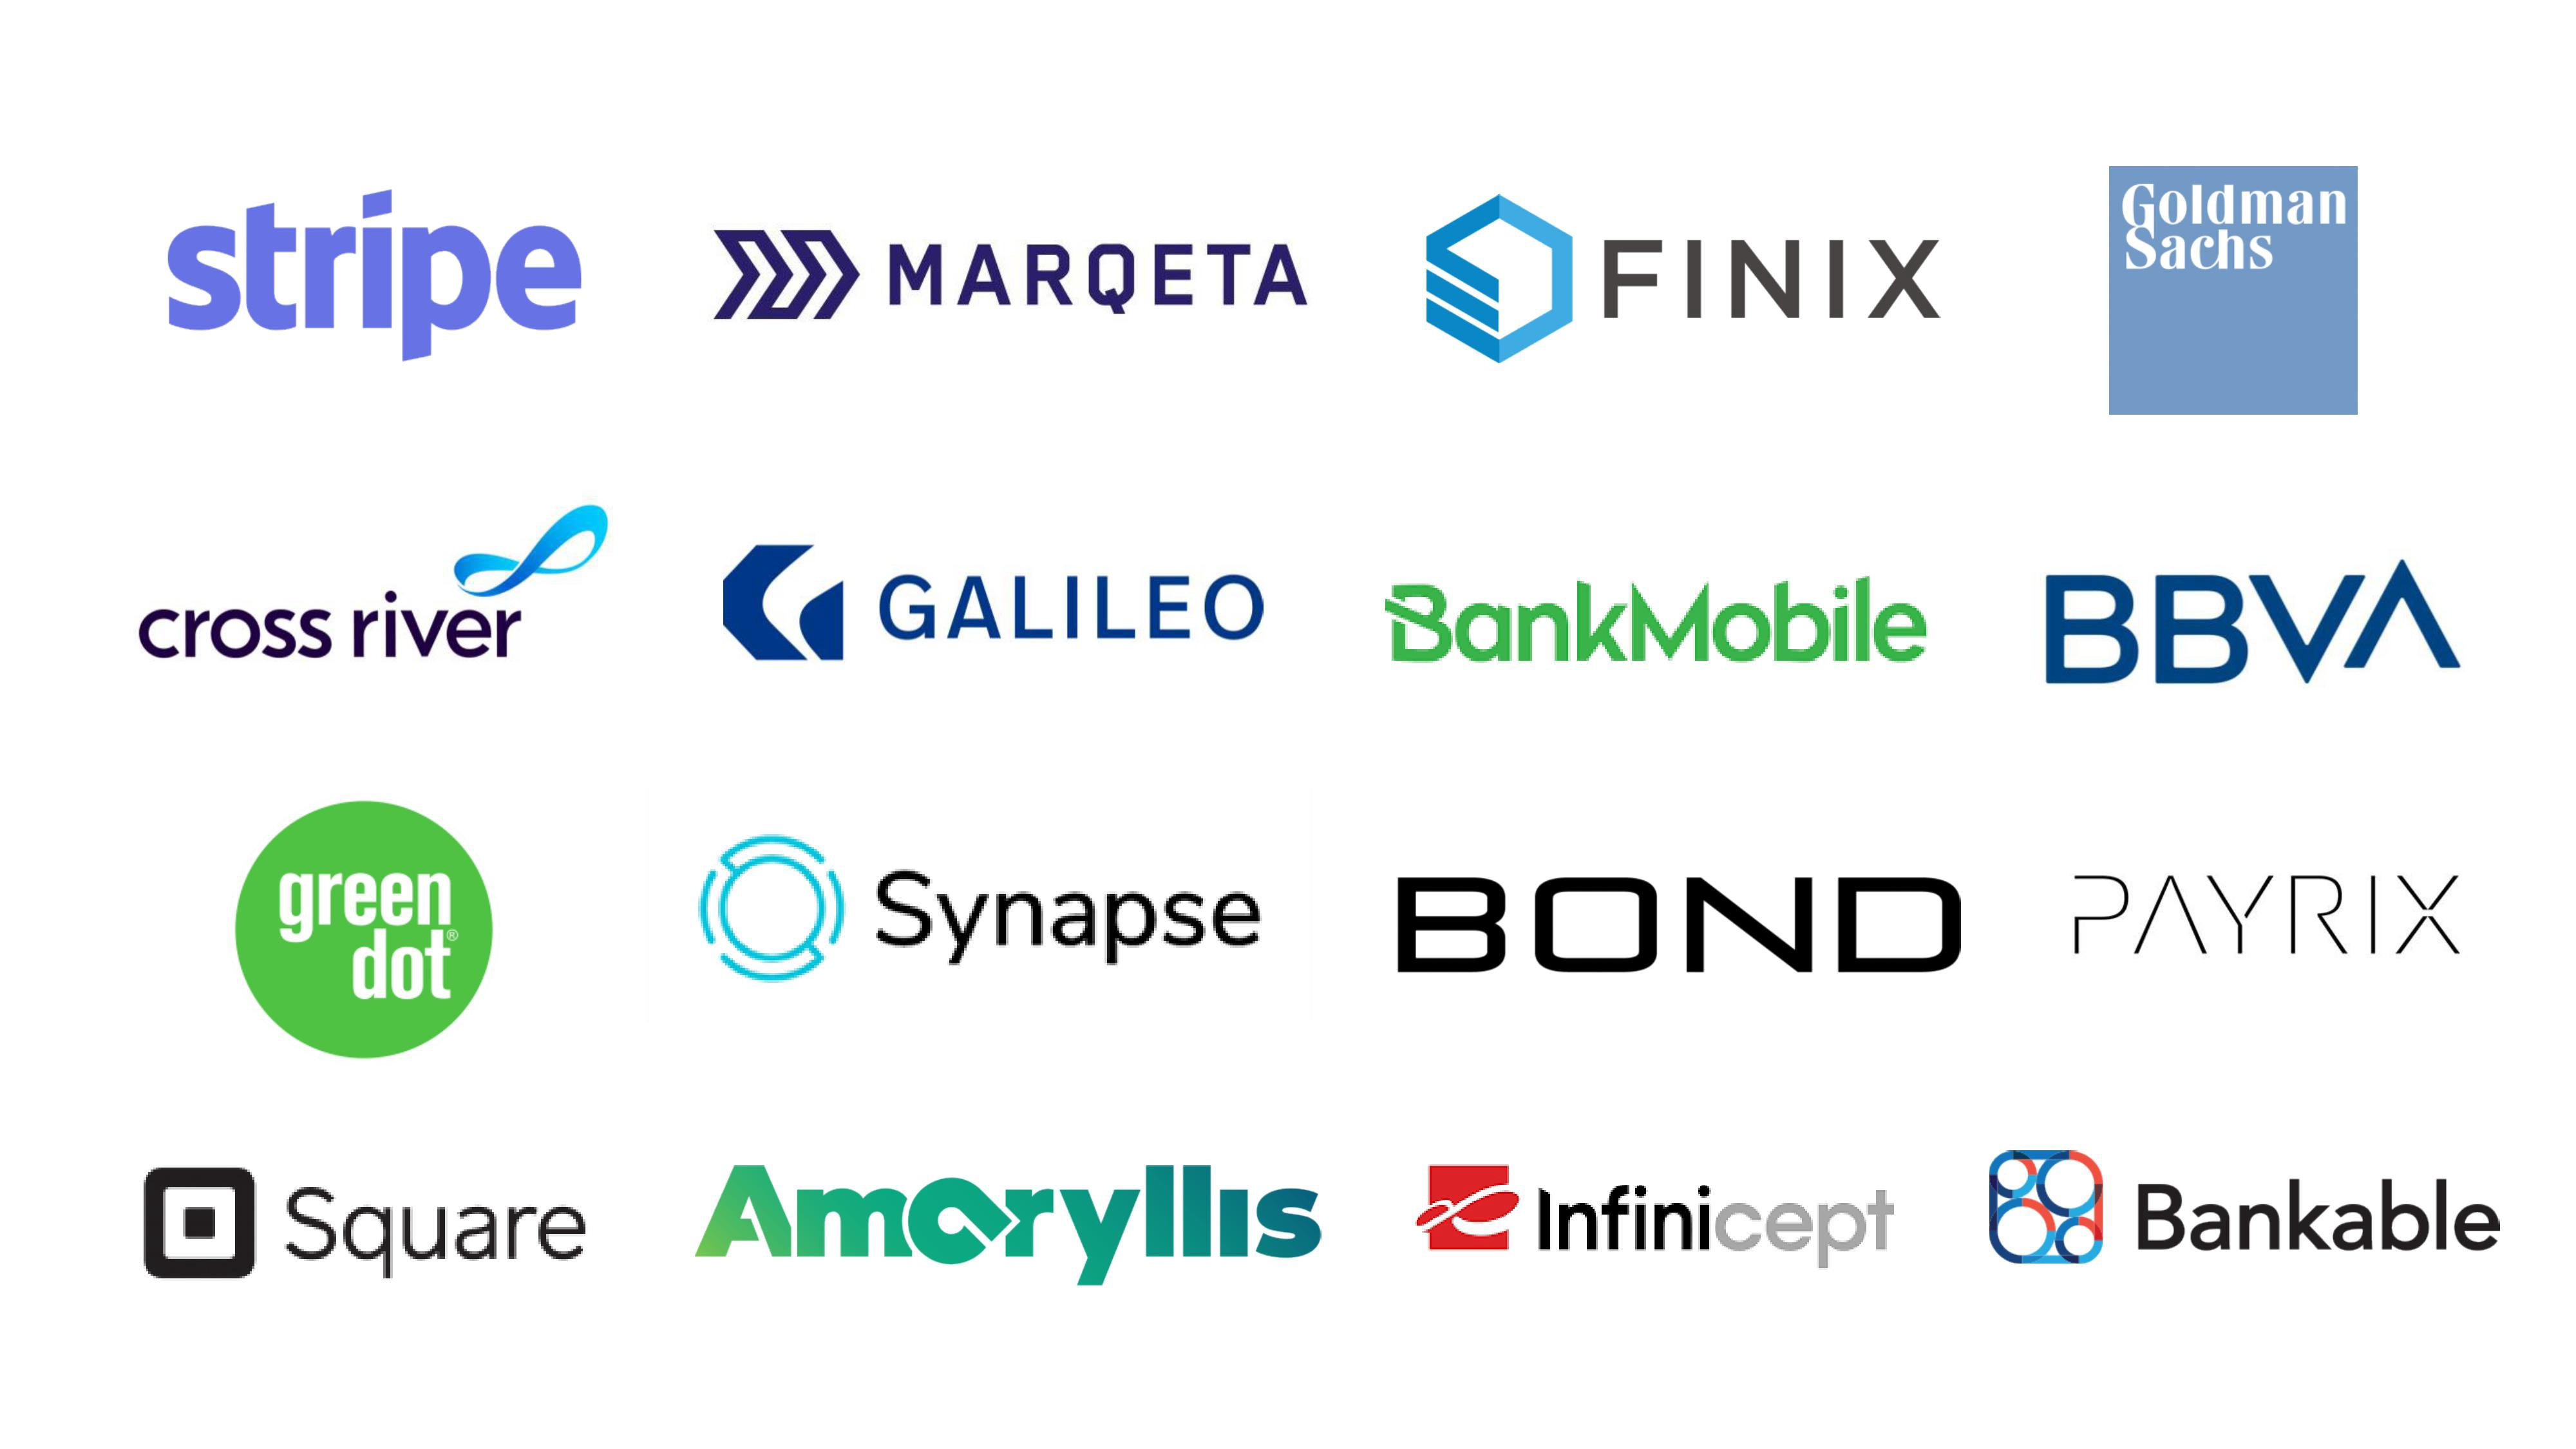 The Next Generation of Fintech Infrastructure: How API Platforms are Disrupting Banking & Payments